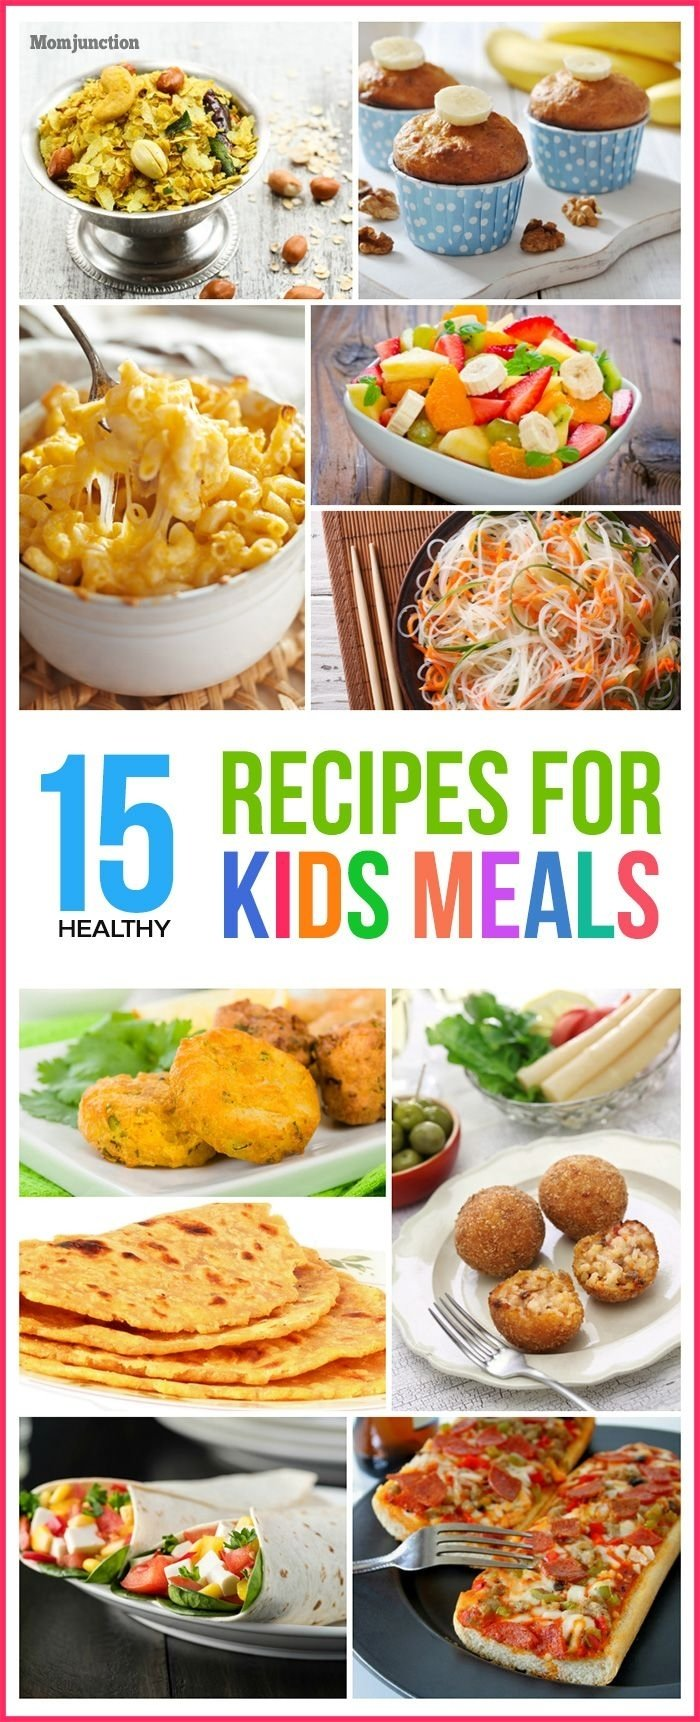 10 Great Quick Kid Friendly Dinner Ideas 805 best healthy food for kids dinner images on pinterest cooking 6 2021